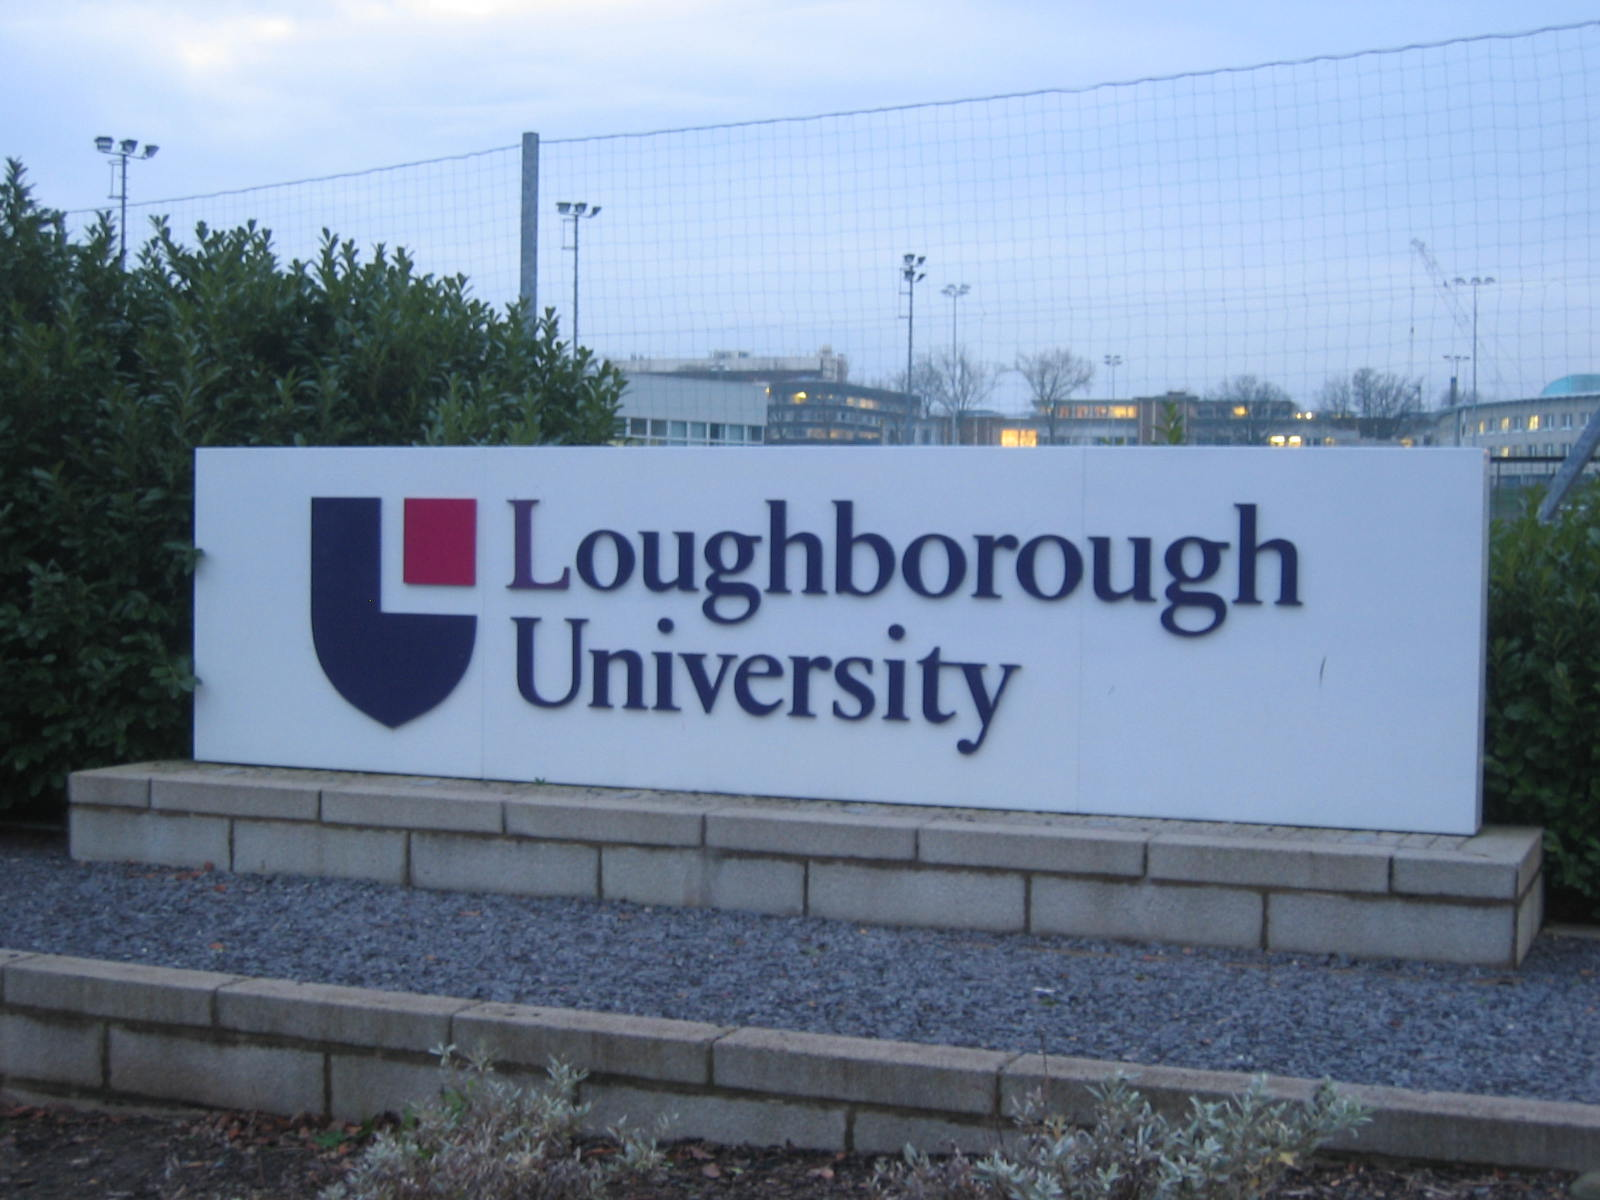 Universidade de Loughborough